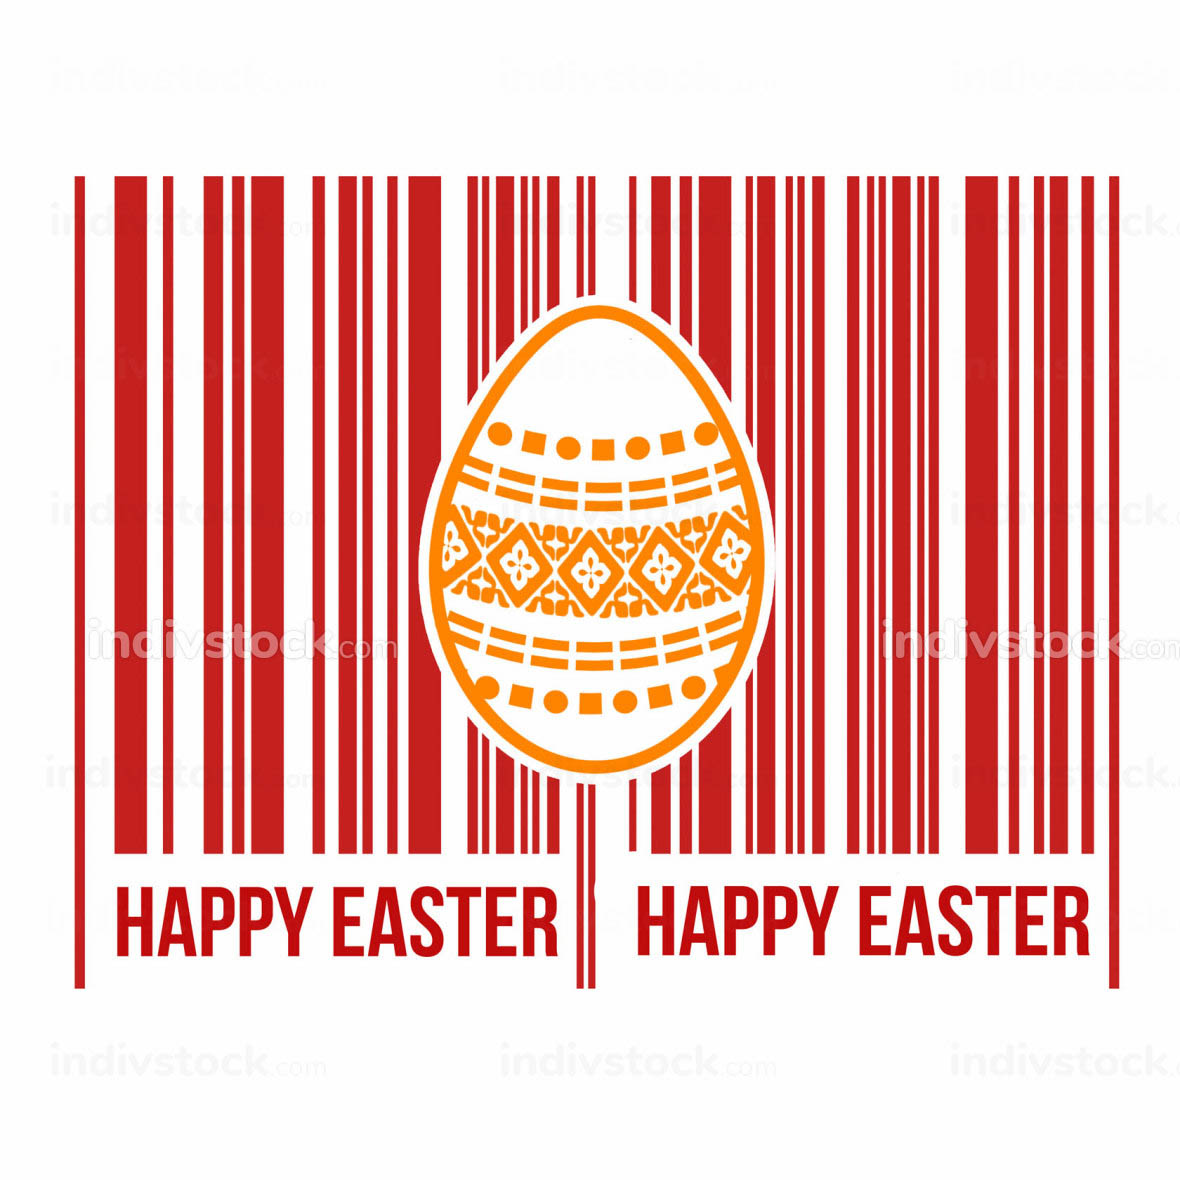 Happy Easter barcode